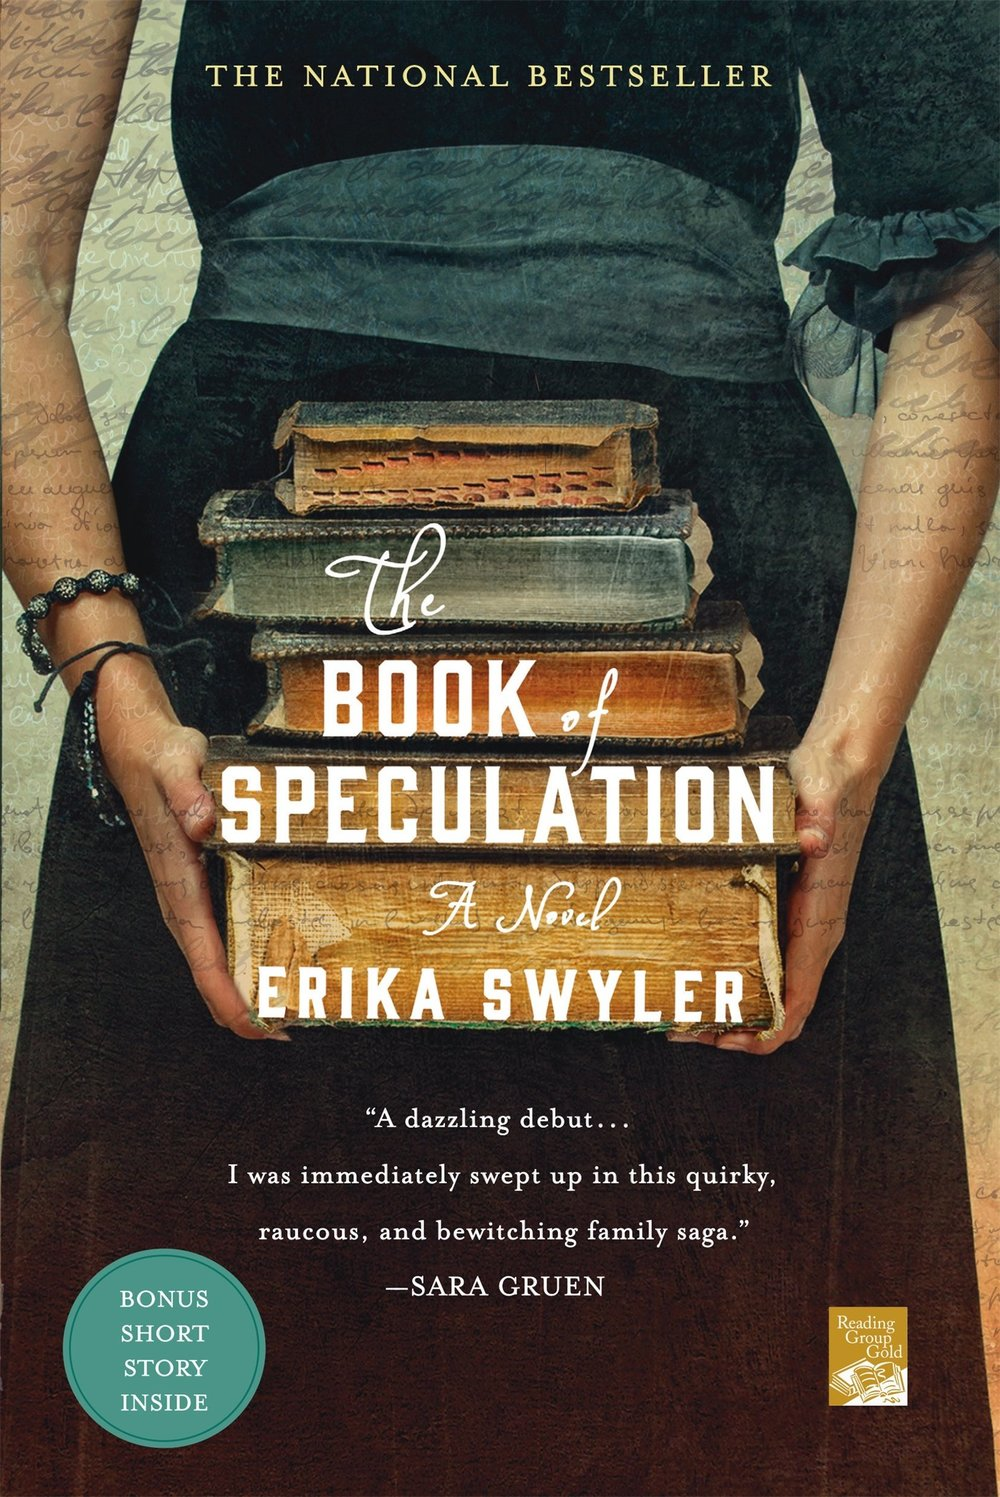 BSG #10: Put a tail on it! / The Book of Speculation - Special guest Mary Kay from Everything Trying to Kill You joins the squad to discuss Erika Swyler's novel The Book of Speculation. In this episode, we discuss the ins and out of circus literature (which is totally a thing), tarot readings, family curses, and much much more. Plus, we answer your burning questions about Stranger Things and Star Wars: The Last Jedi. Wonder what those space cows are really called? We have the answer!